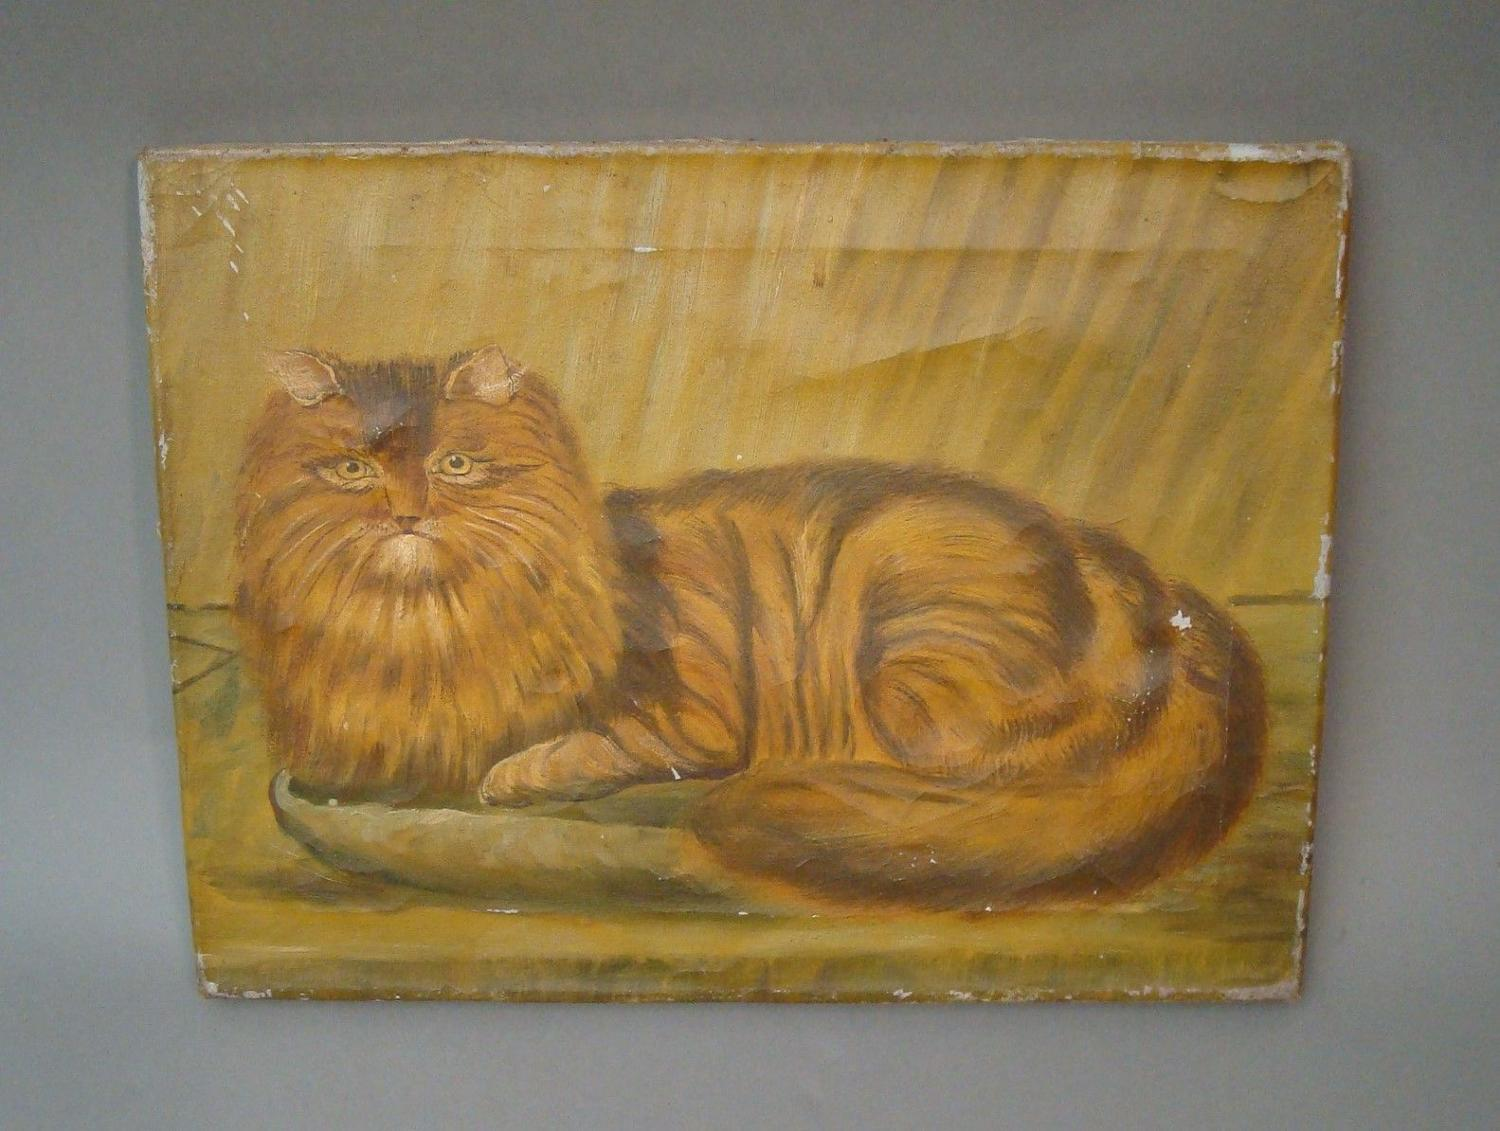 C19th primitive oil on canvas of cat